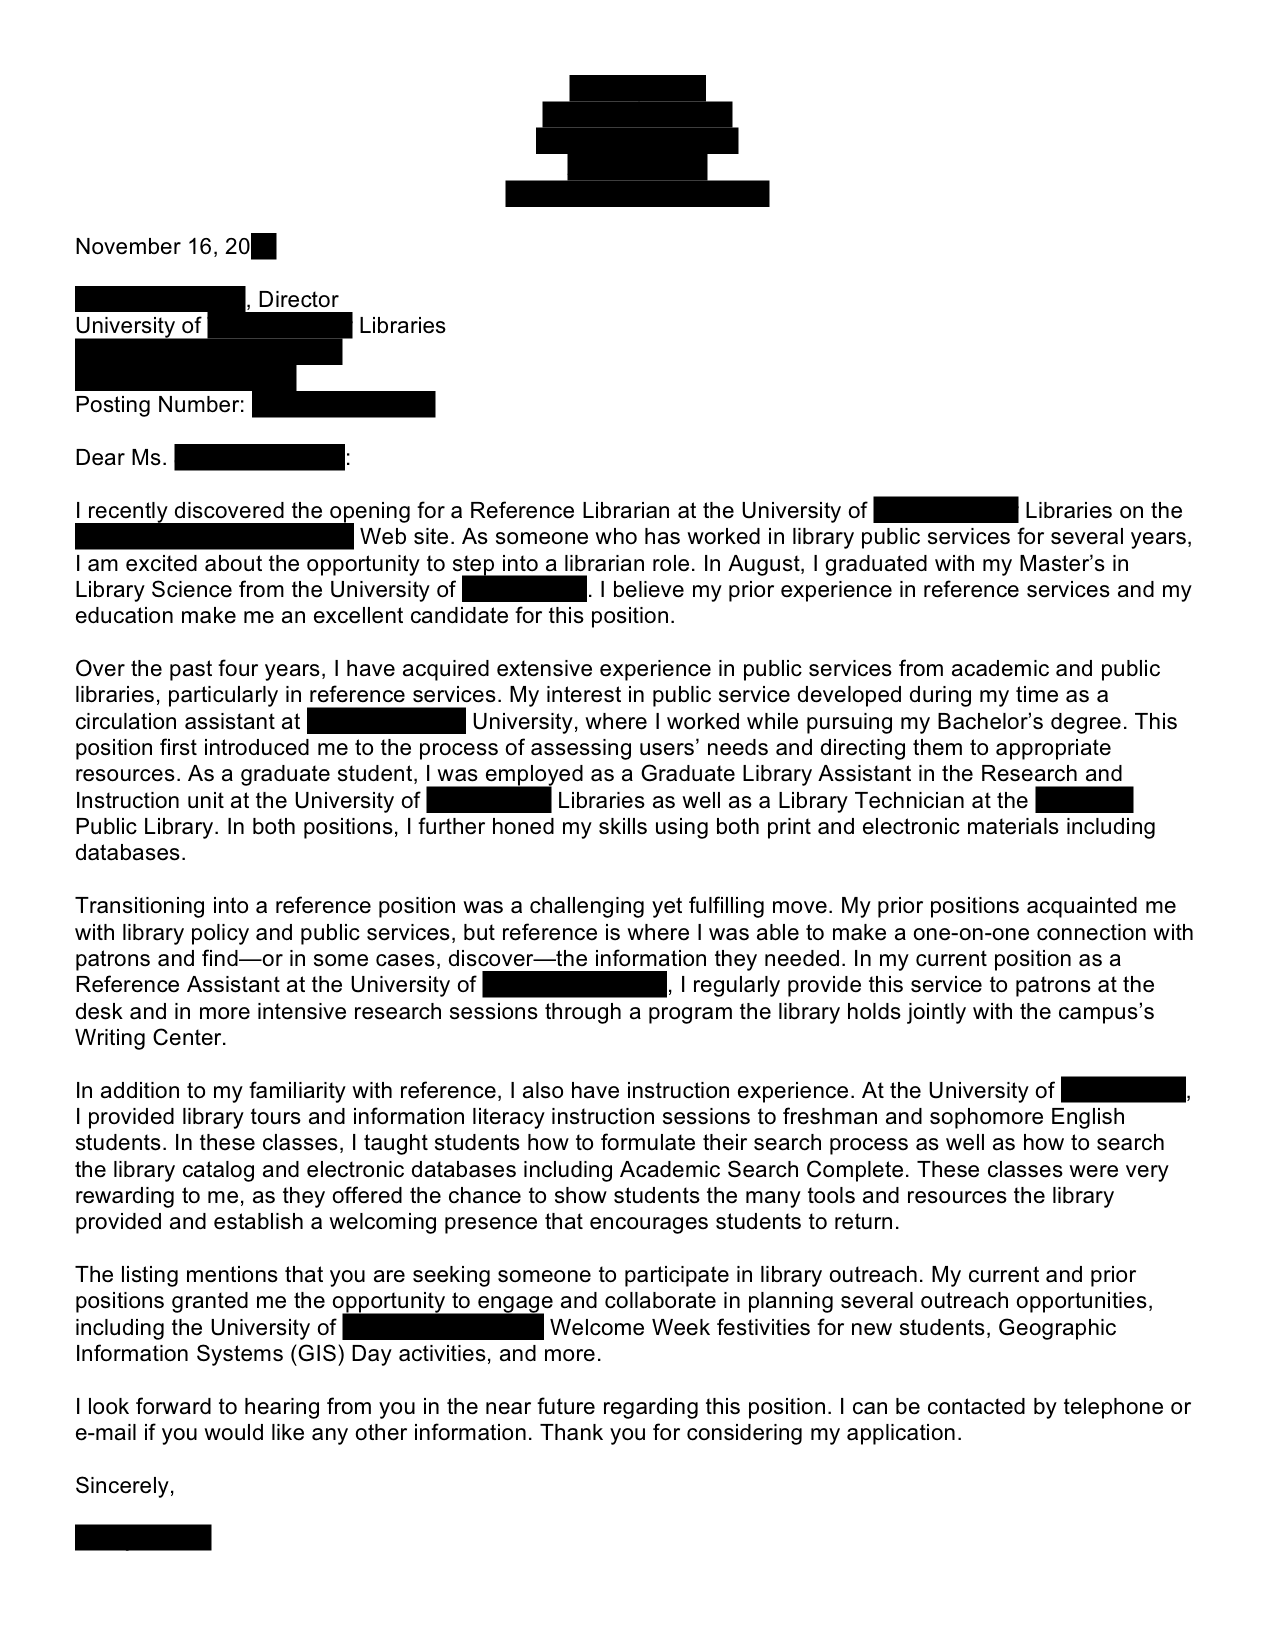 school librarian cover letter resume library school librarian cover letter - How To Write The Cover Letter